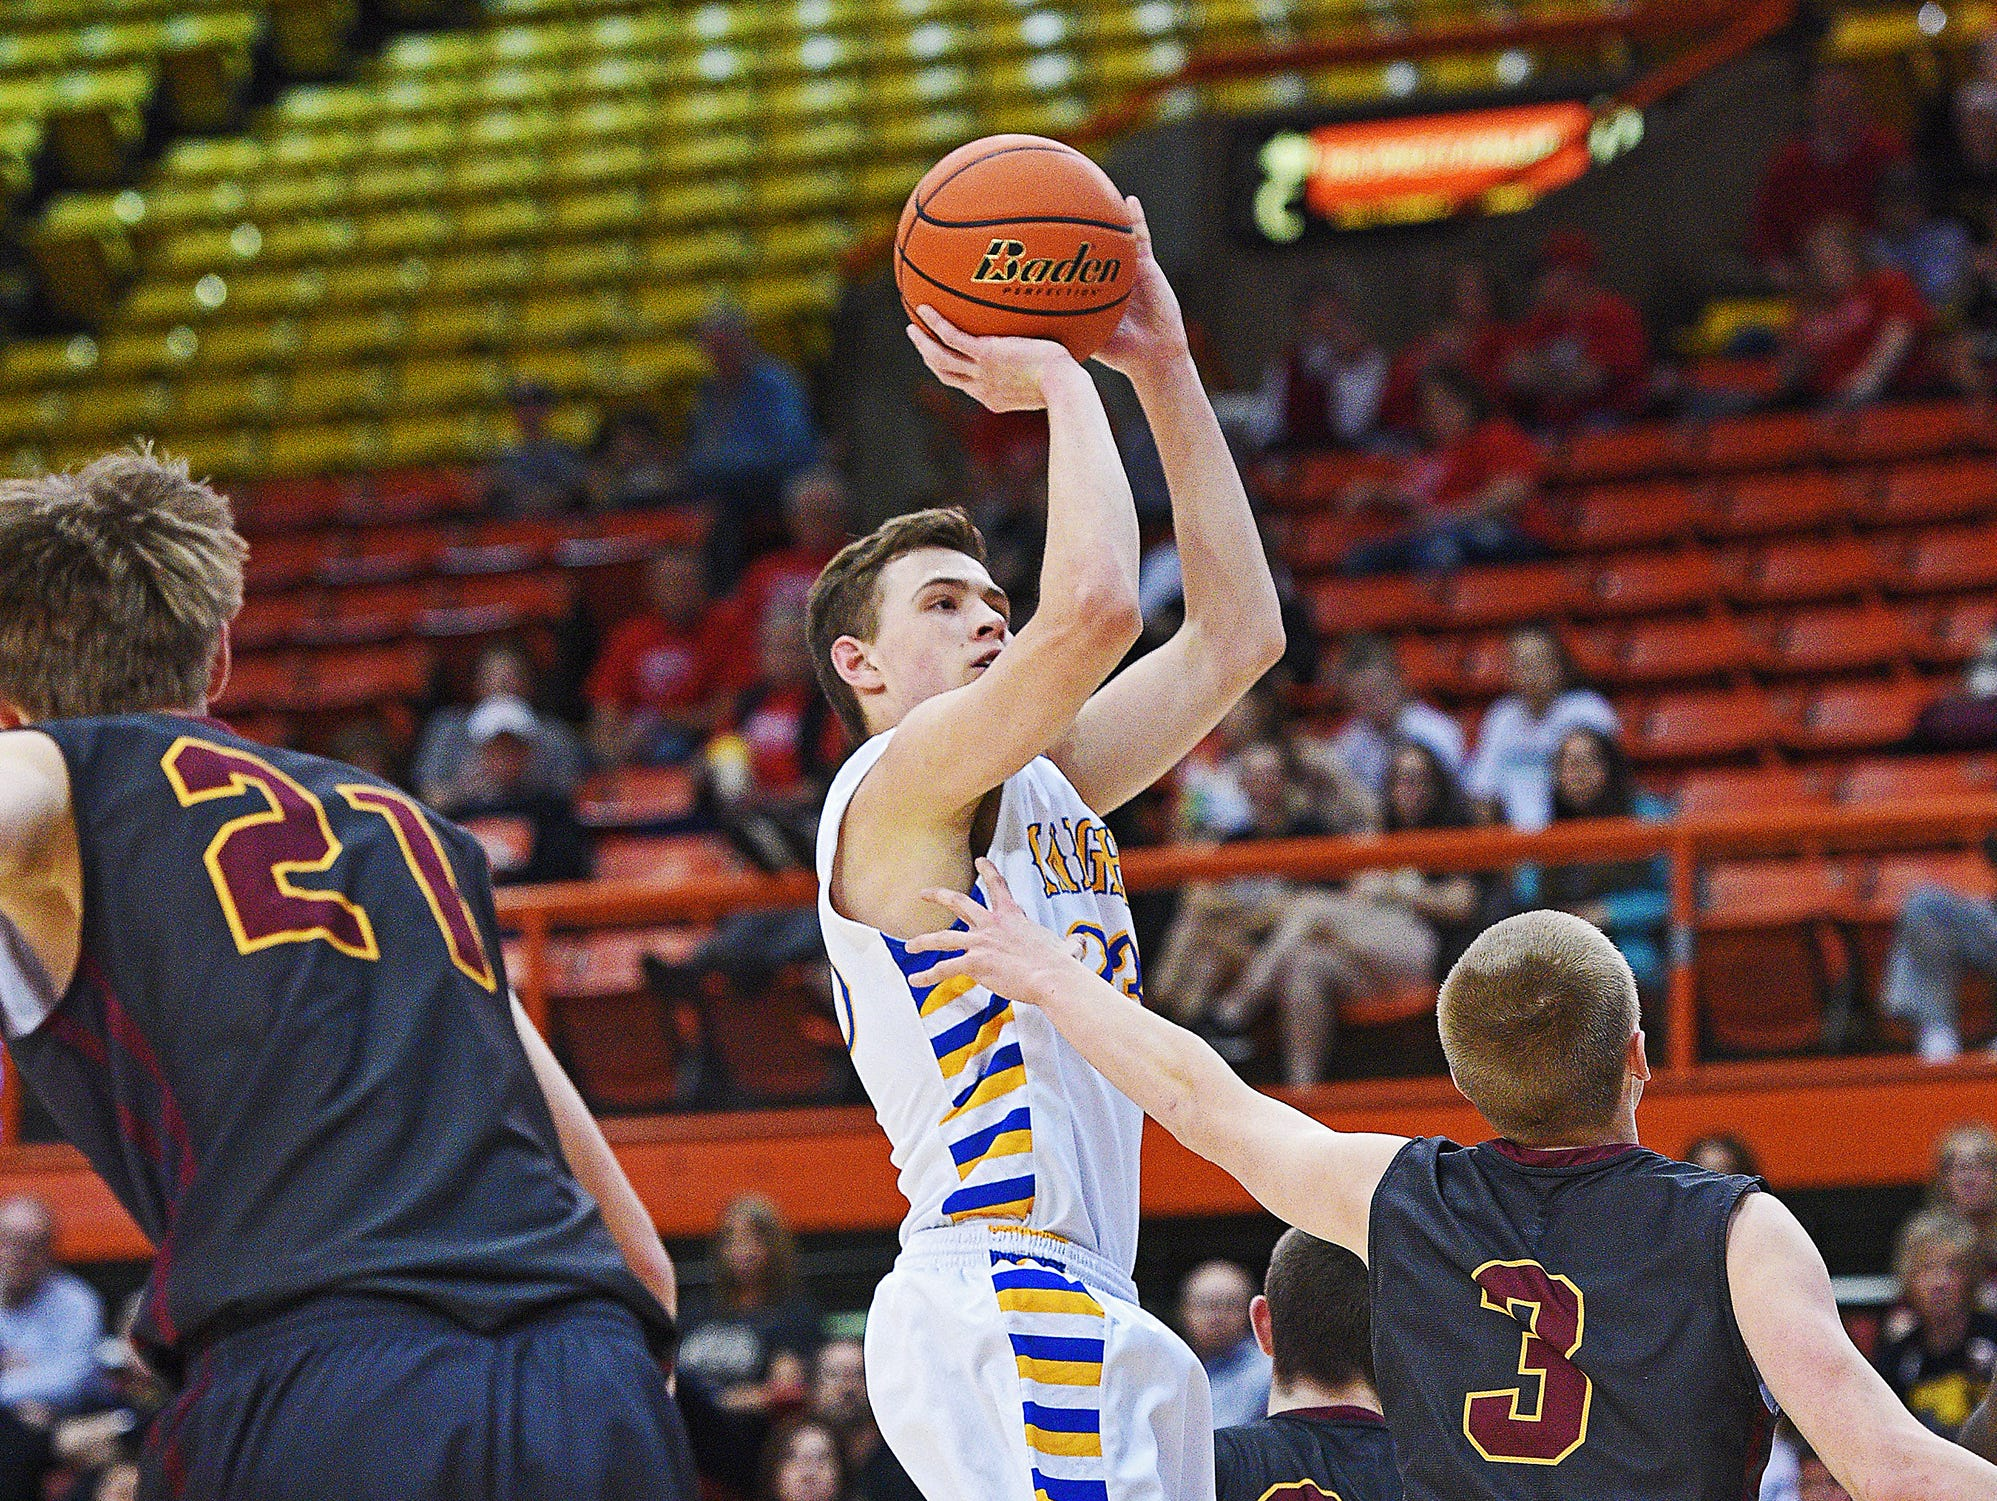 O'Gorman's Matt Cartwright (23) takes a shot during a 2017 SDHSAA Class AA State Boys Basketball quarterfinal game against Harrisburg Thursday, March 16, 2017, at Rushmore Plaza Civic Center in Rapid City.